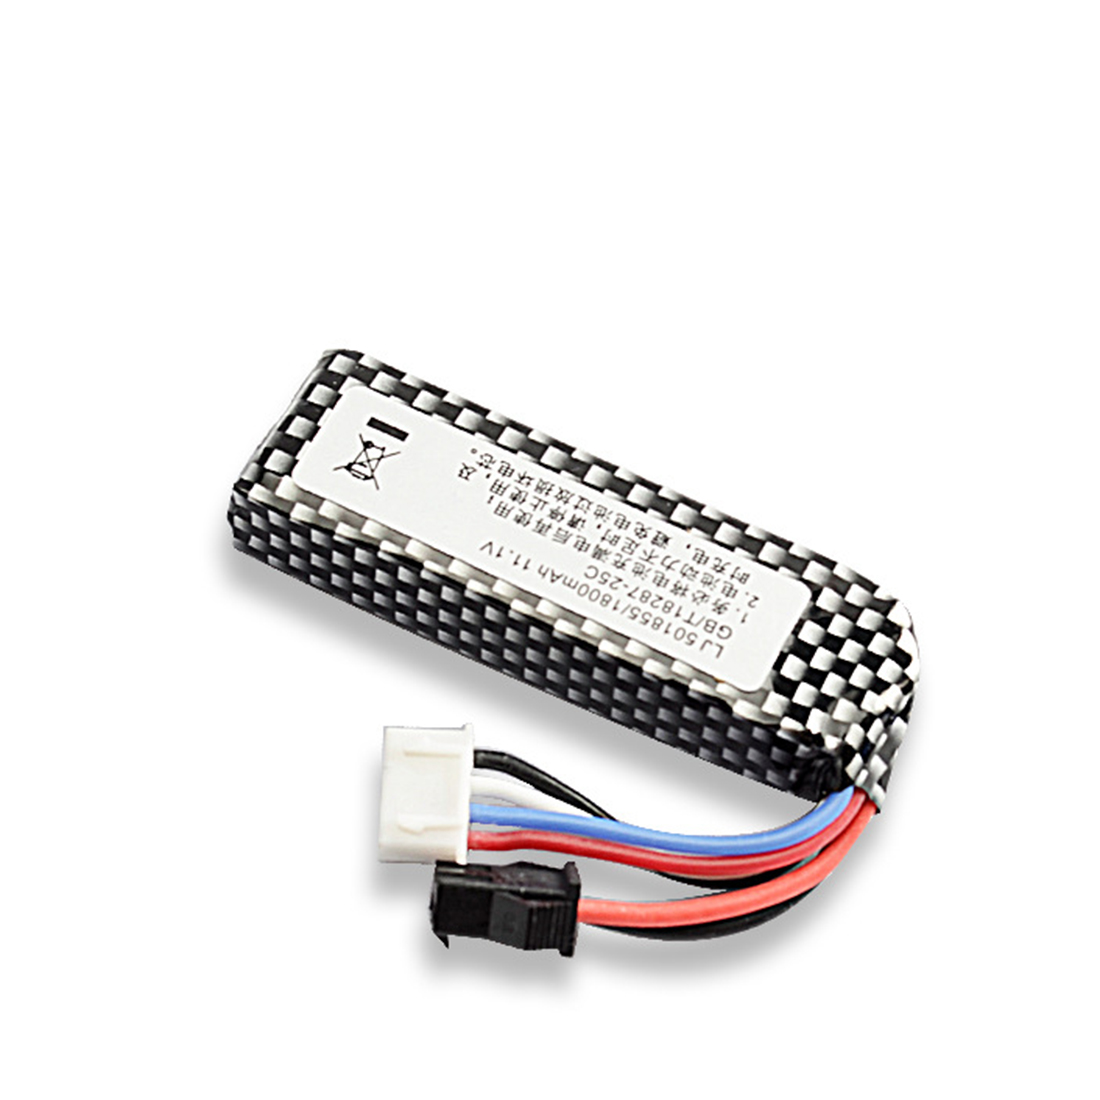 T238 Flash Bomb Flash Bang Standard Battery 11.1v 25c 1400mah Polymer Battery High Discharge Rate Lithium Battery